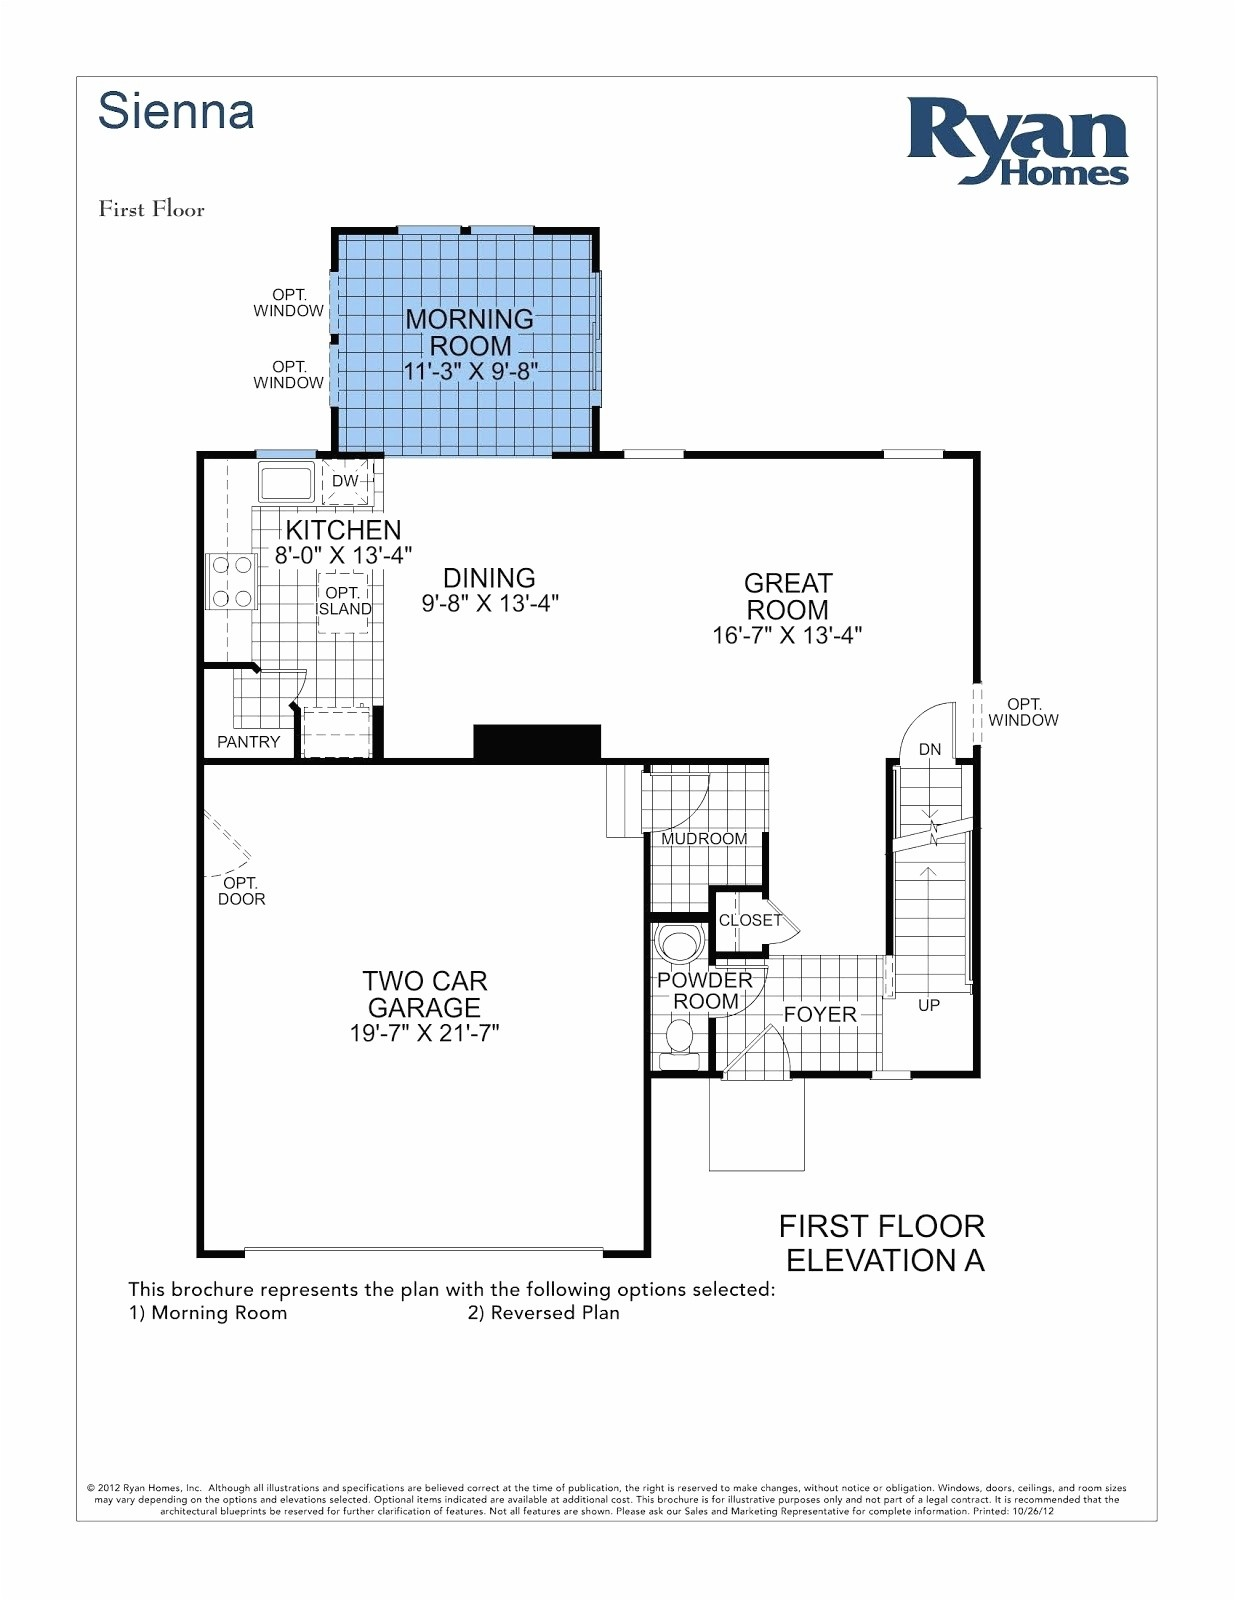 diy floor plans magnificent ryan homes house plans best ryan homes mozart floor plan